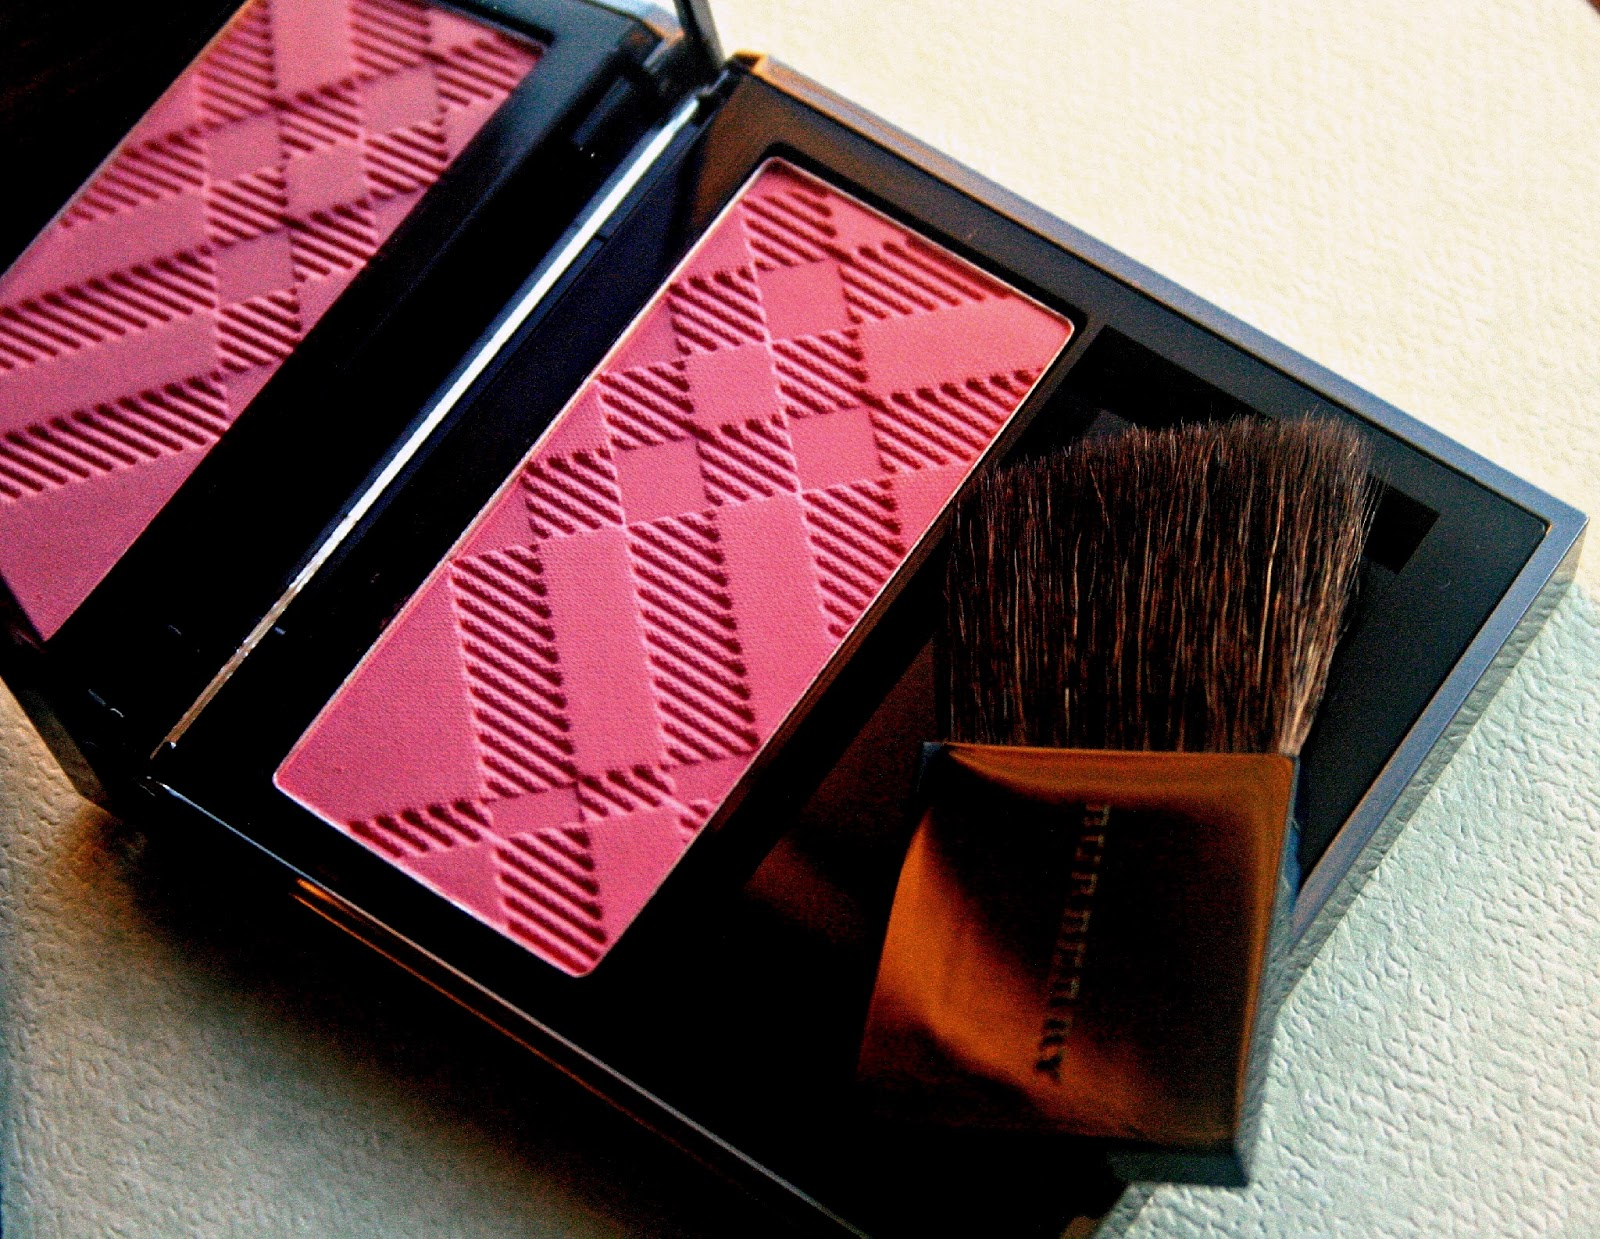 BurberryLight Glow Natural Blush in Coral Pink Burberry Spring/Summer 2013 Makeup Collection